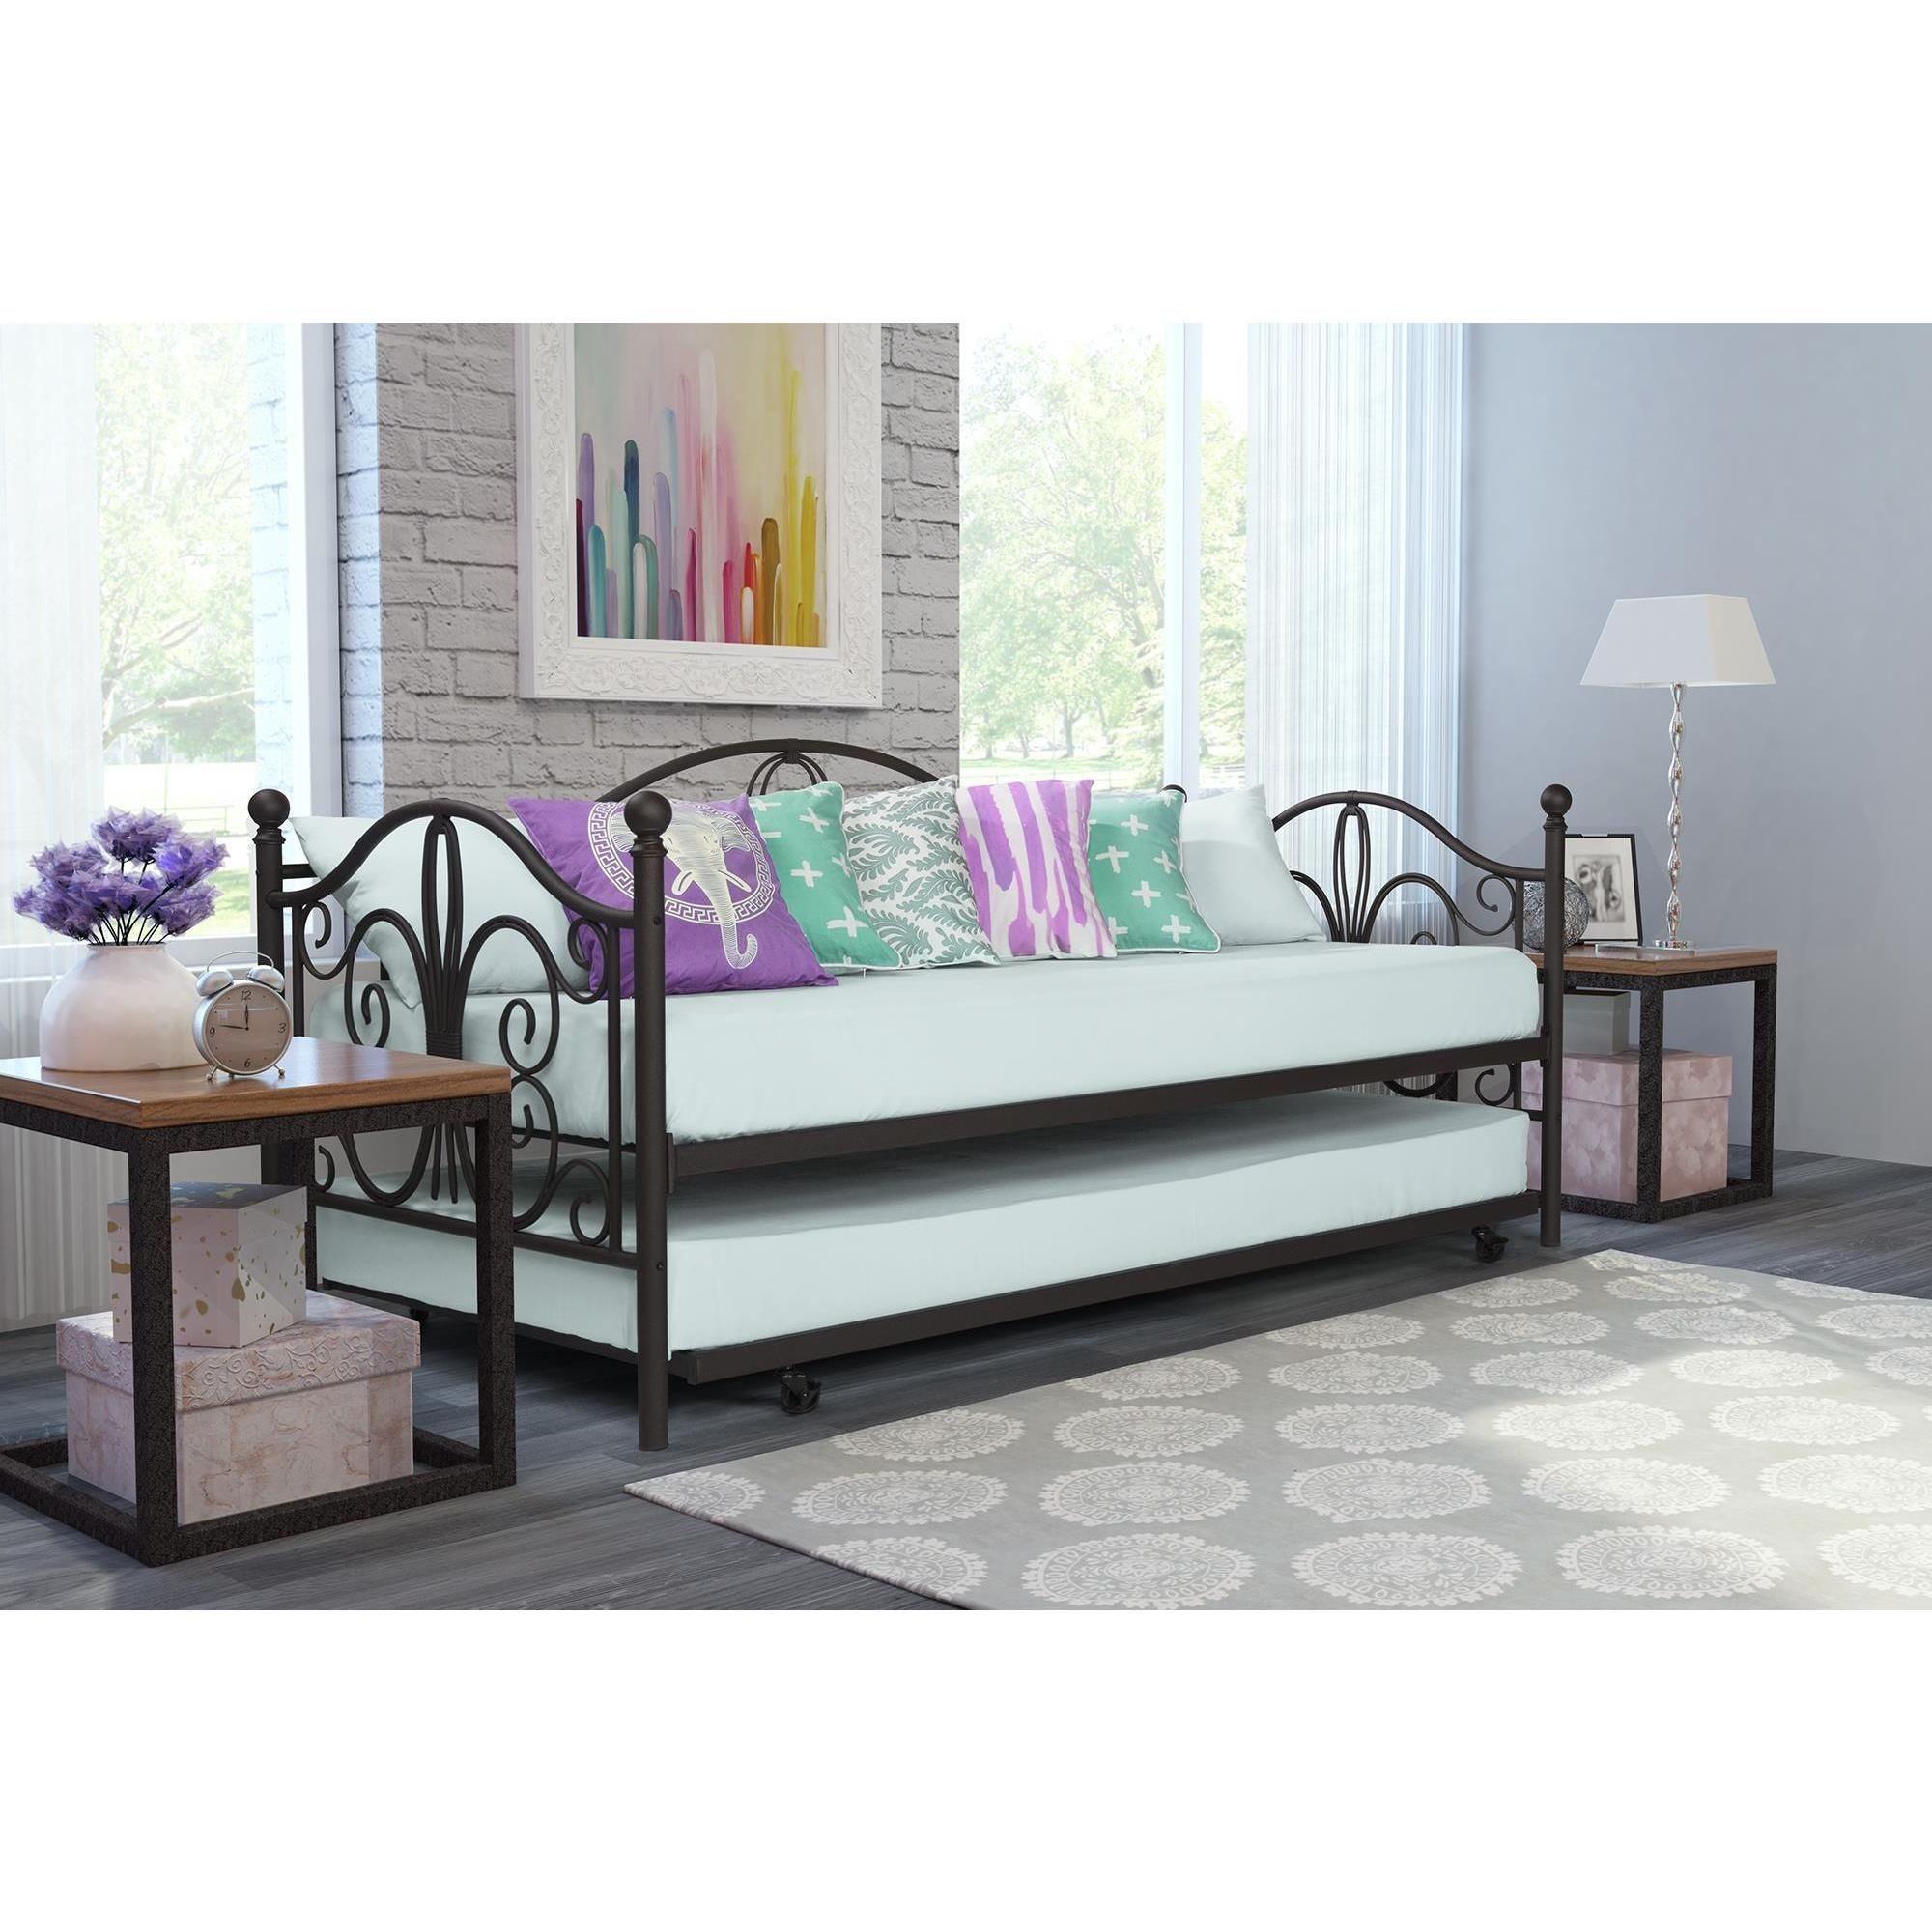 Dhp Ay Metal Daybed And Trundle Ping Great Deals On Beds